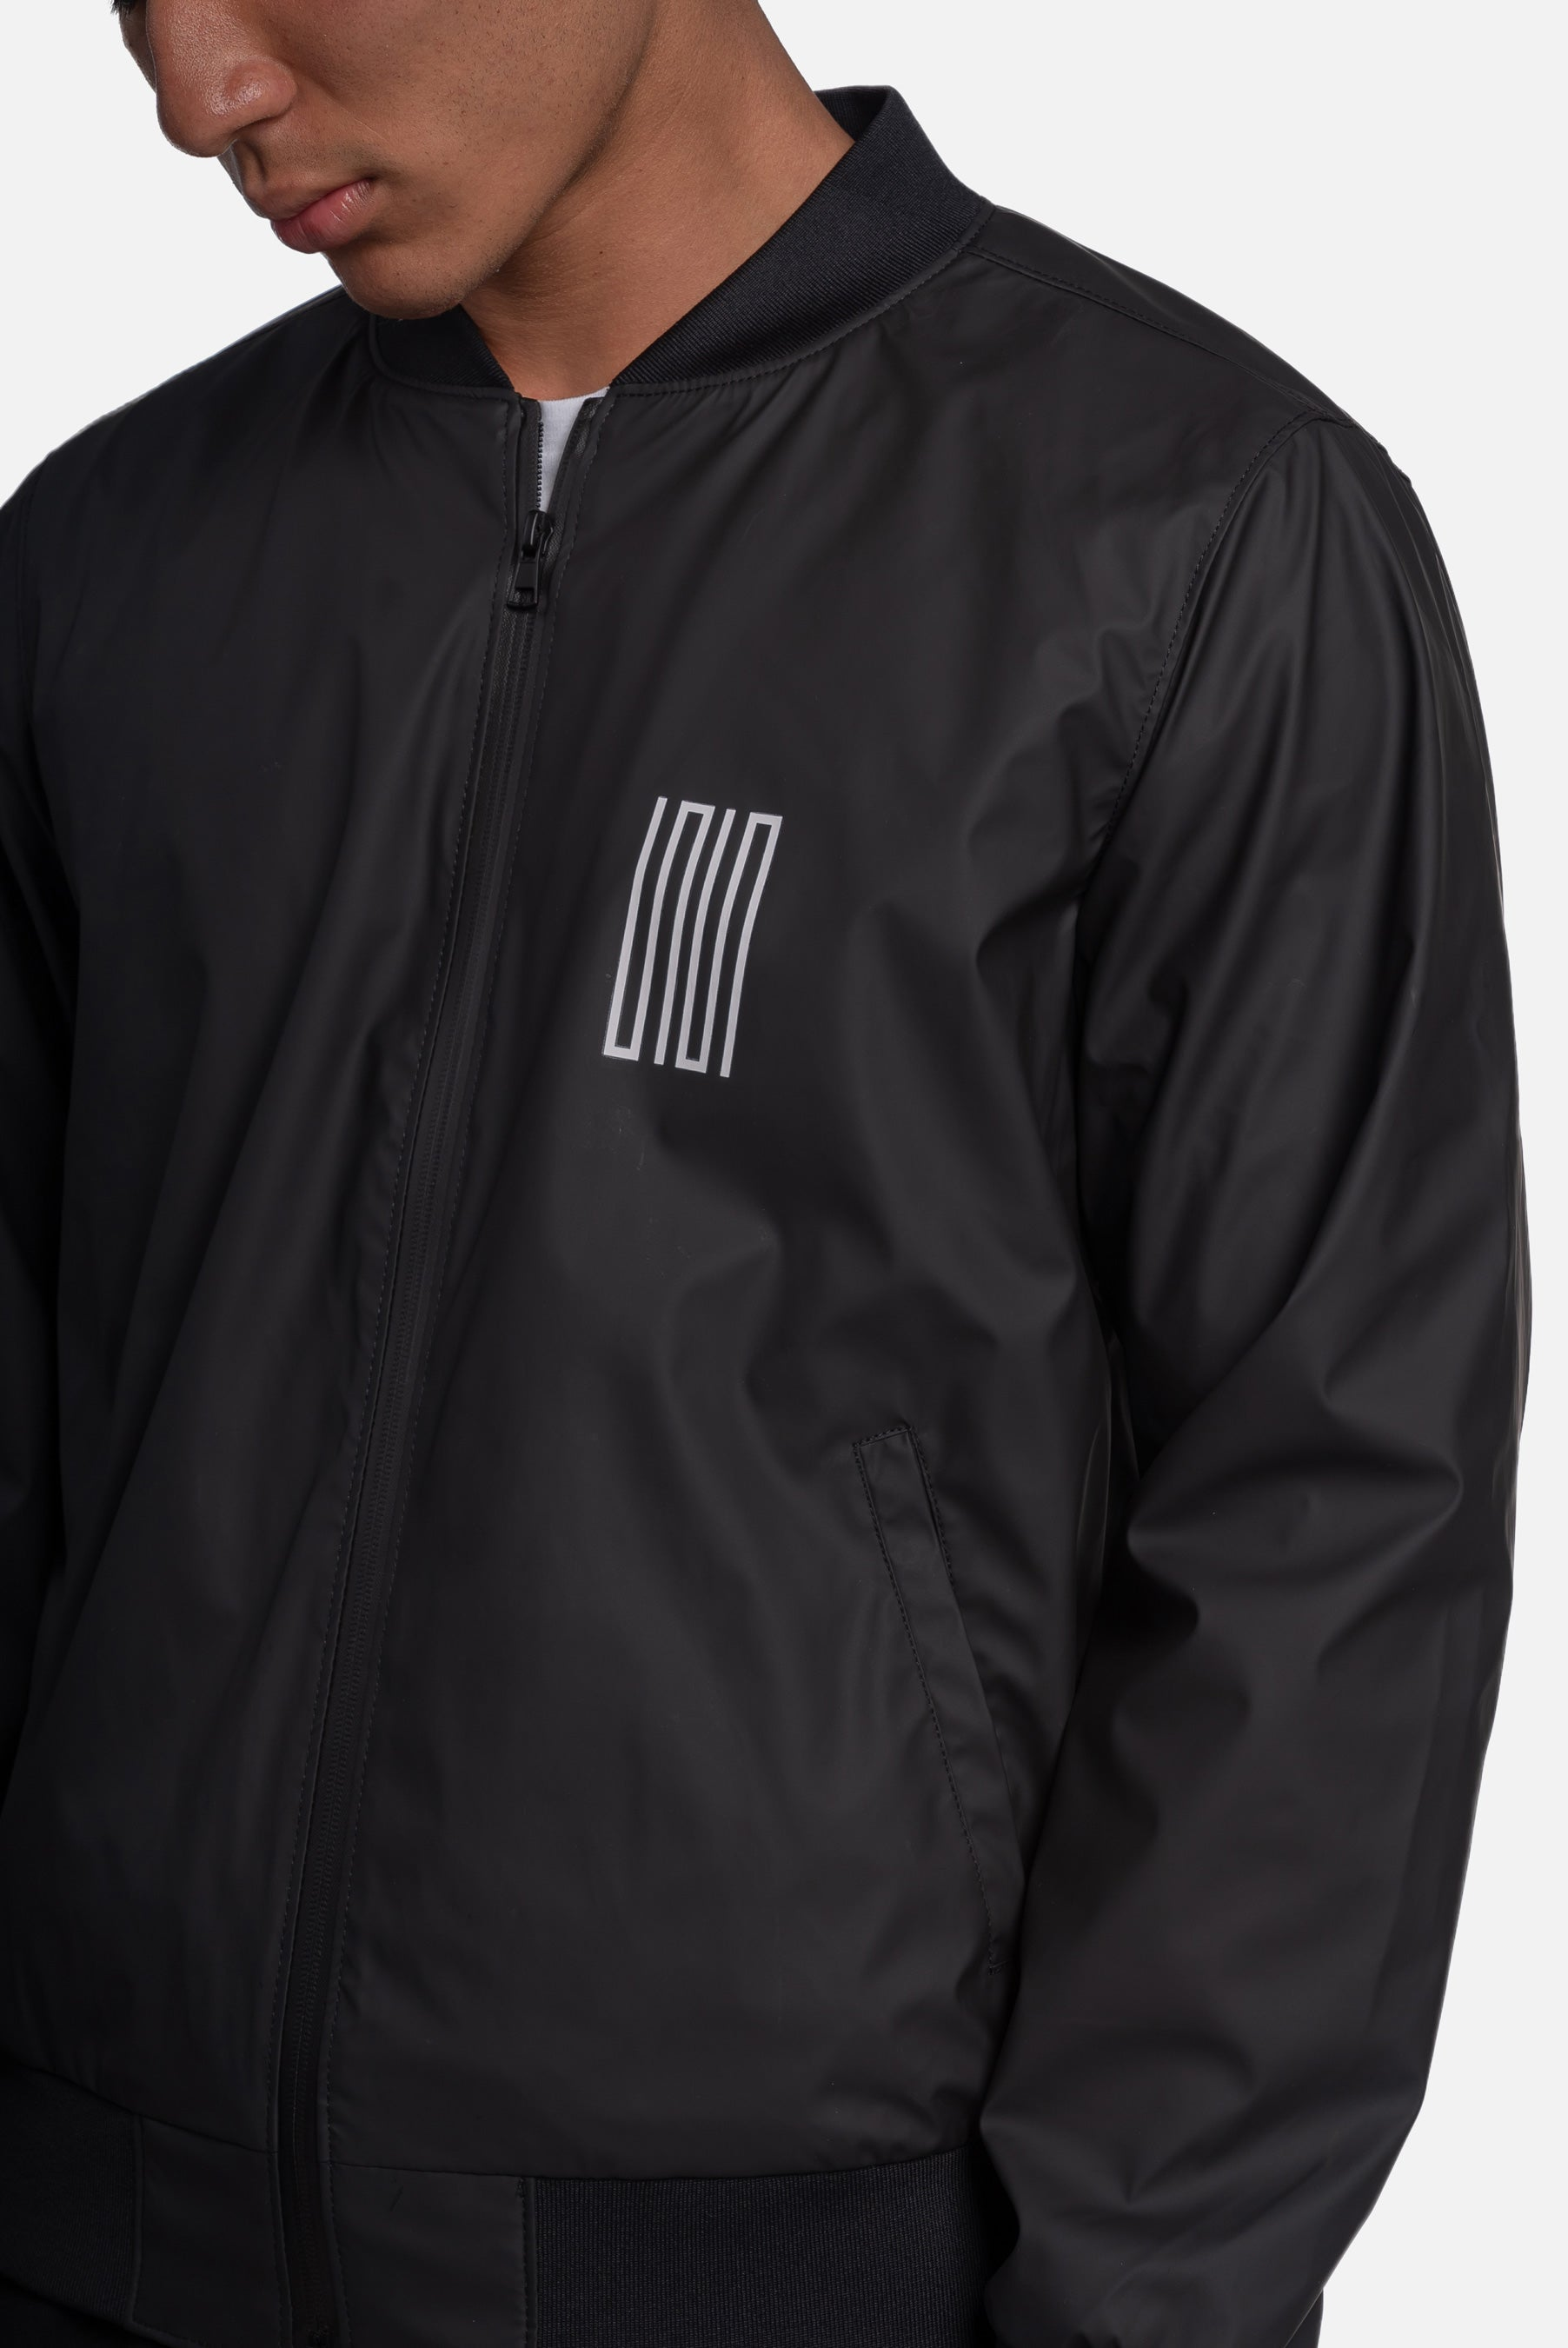 grove article 5 water resistant flight jacket - scrt society